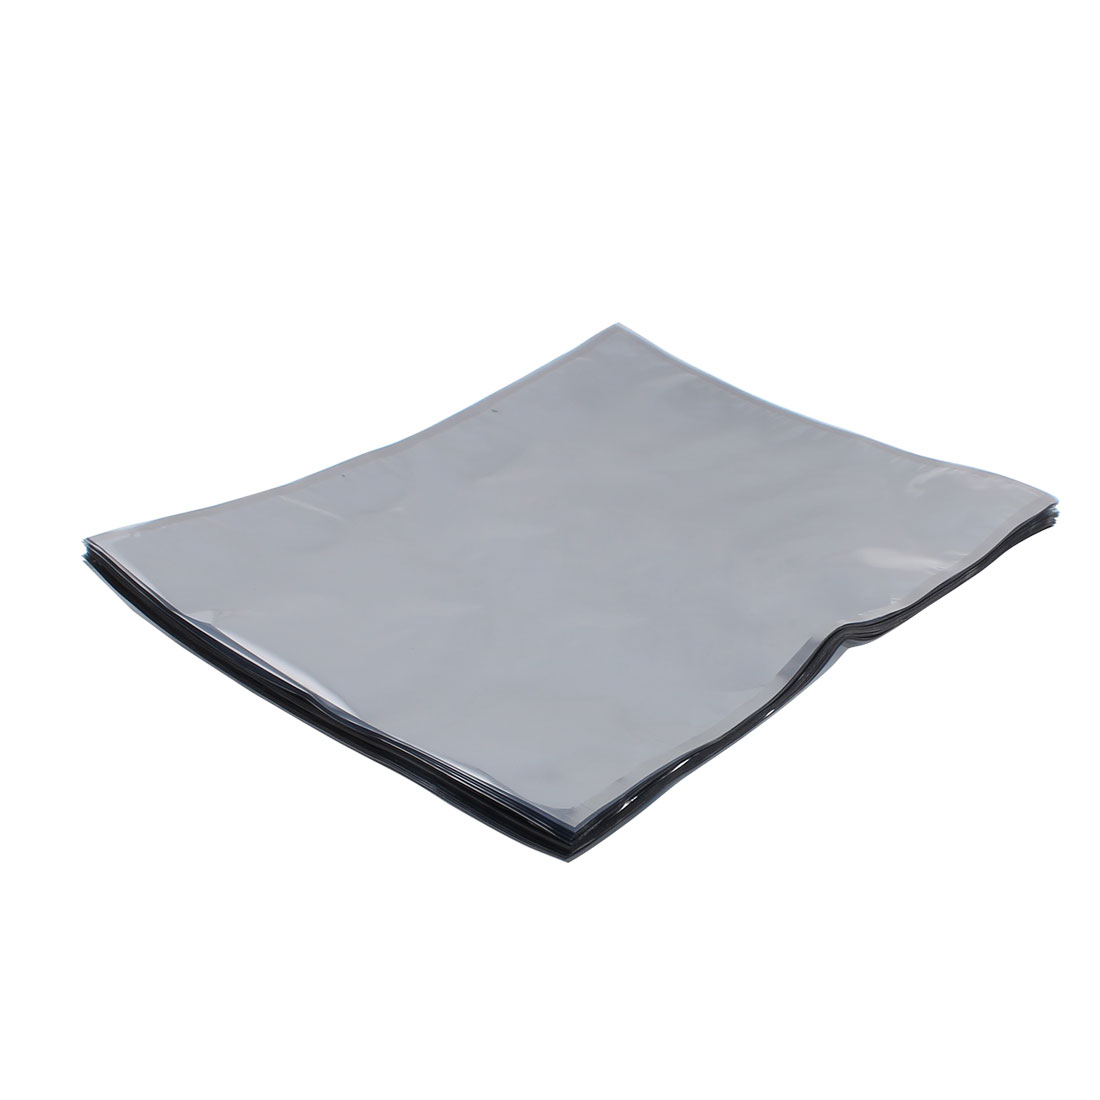 50 Pcs 400mm x 500mm Silver Tone Flat Open Top Anti Static Bag For Electronics